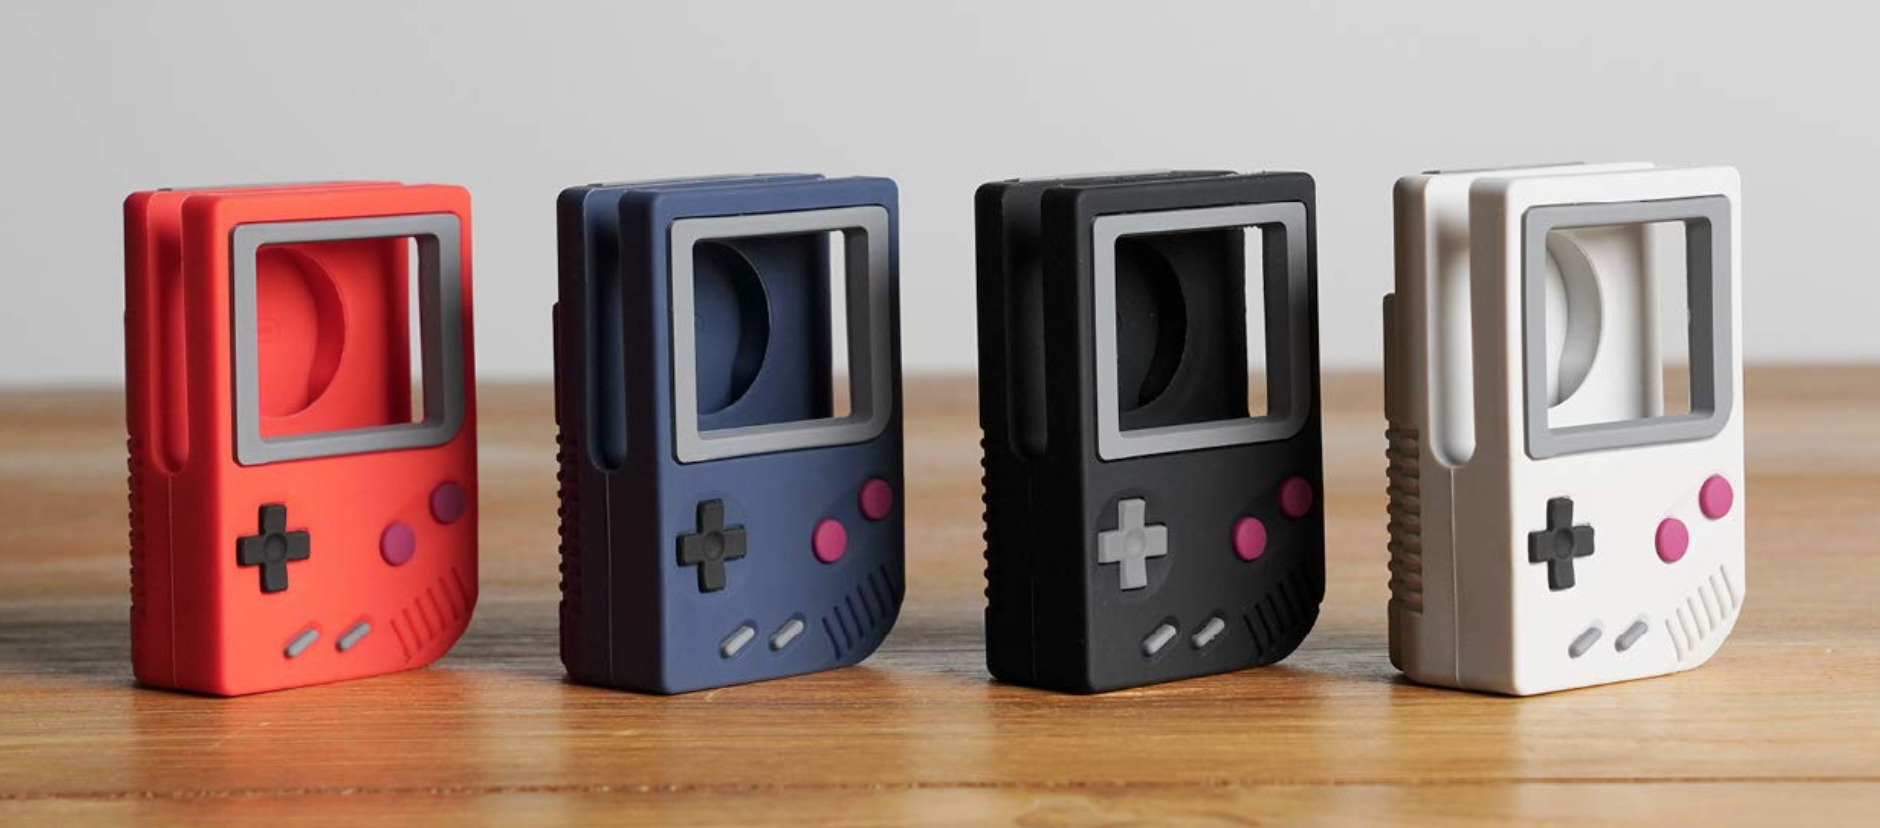 Apple-Watch-Game-Boy-Stand-Red-Blue-Black-White.png